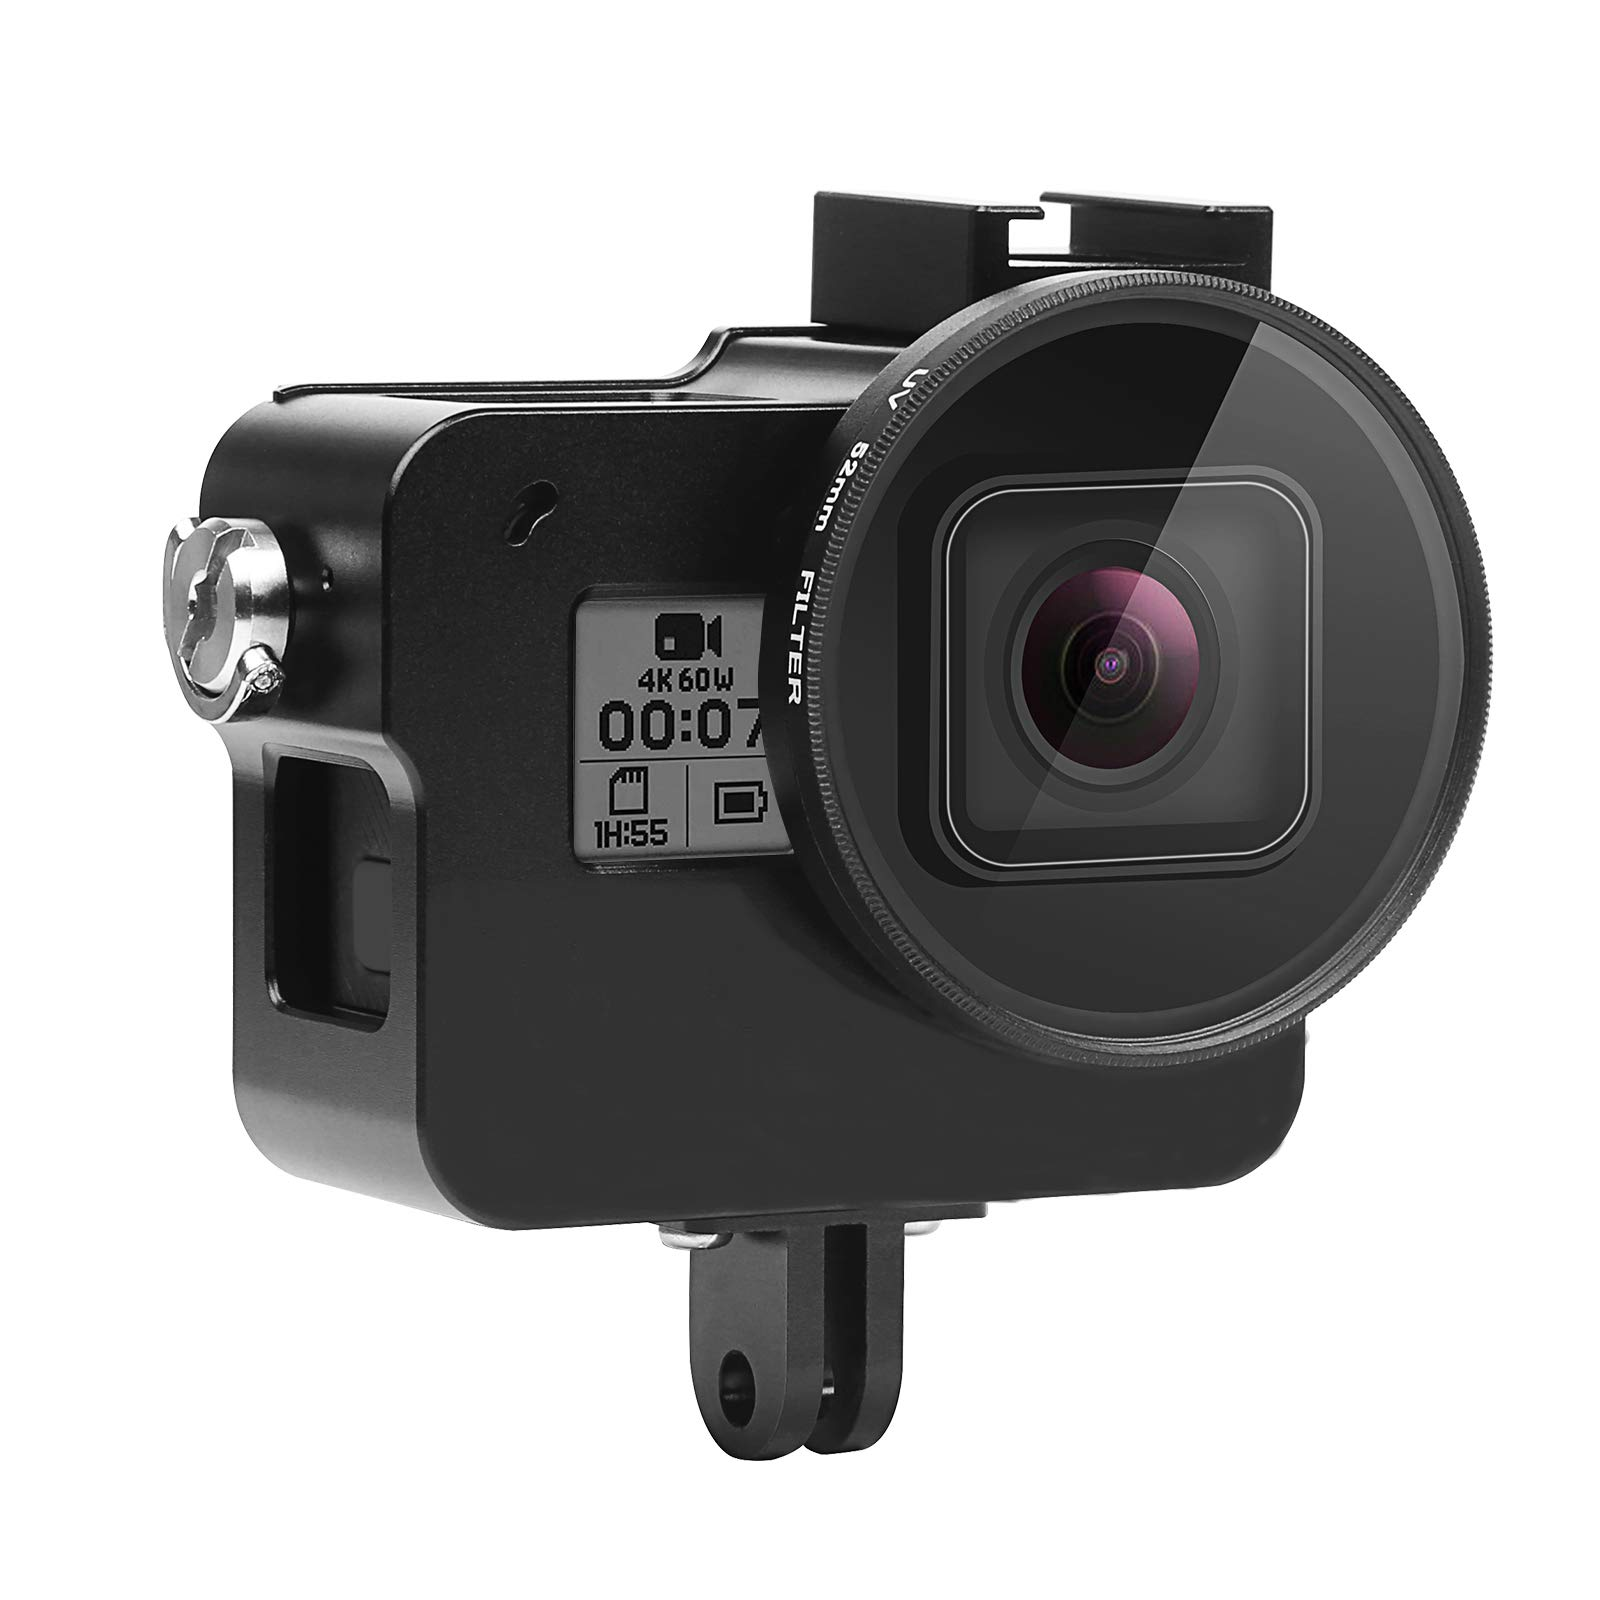 SHOOT Aluminium Metal Case Alloy Skeleton Protective Housing with 52mm UV Filter for GoPro Hero 7 Black Action Camera